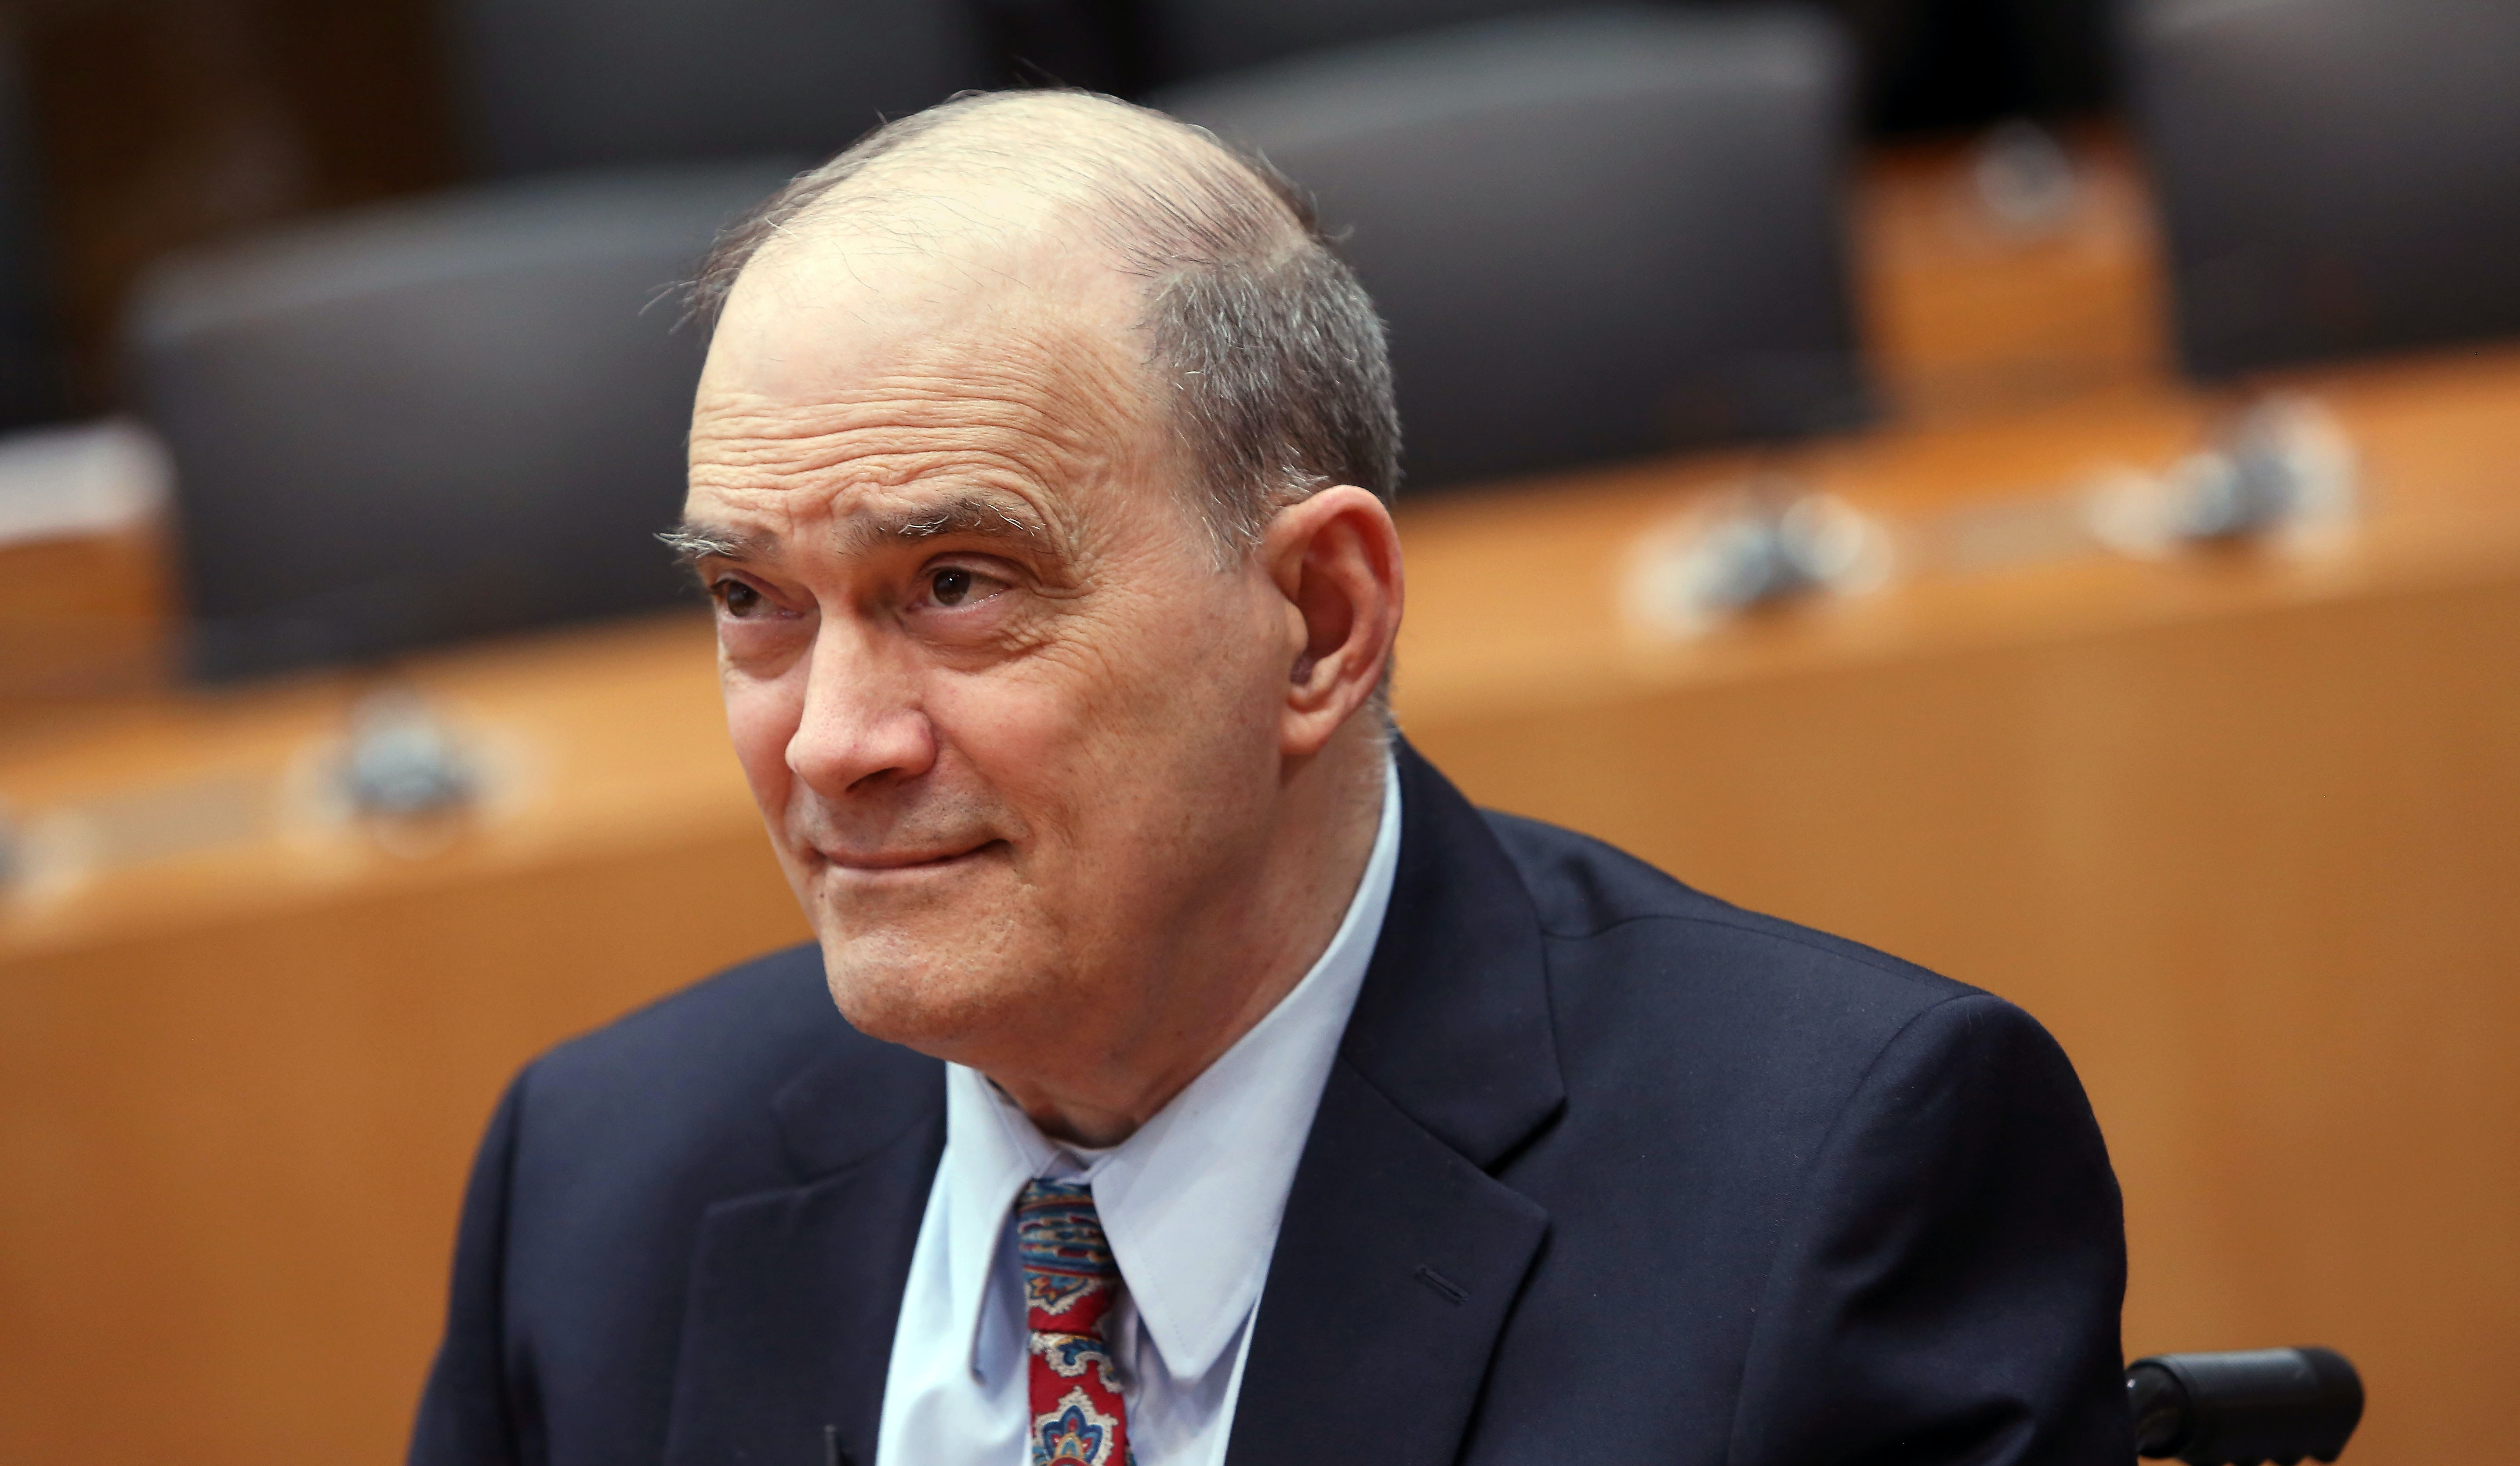 BERLIN, GERMANY - JULY 03: William Binney, former intelligence official of the U.S. National Security Agency (NSA) turned whistleblower, arrives to testify at the Bundestag commission investigating the role of the U.S. National Security Agency (NSA) in Germany on July 3, 2014 in Berlin, Germany. The commission convened following revelations last year that the NSA had for years eavesdropped on the mobile phone of German Chancellor Angela Merkel and other leading German and European politicians. Recent documents released by former NSA employee Edward Snowden show strong activity by the NSA in Germany as well as cooperation between the NSA and the German intelligence service. (Photo by Adam Berry/Getty Images)